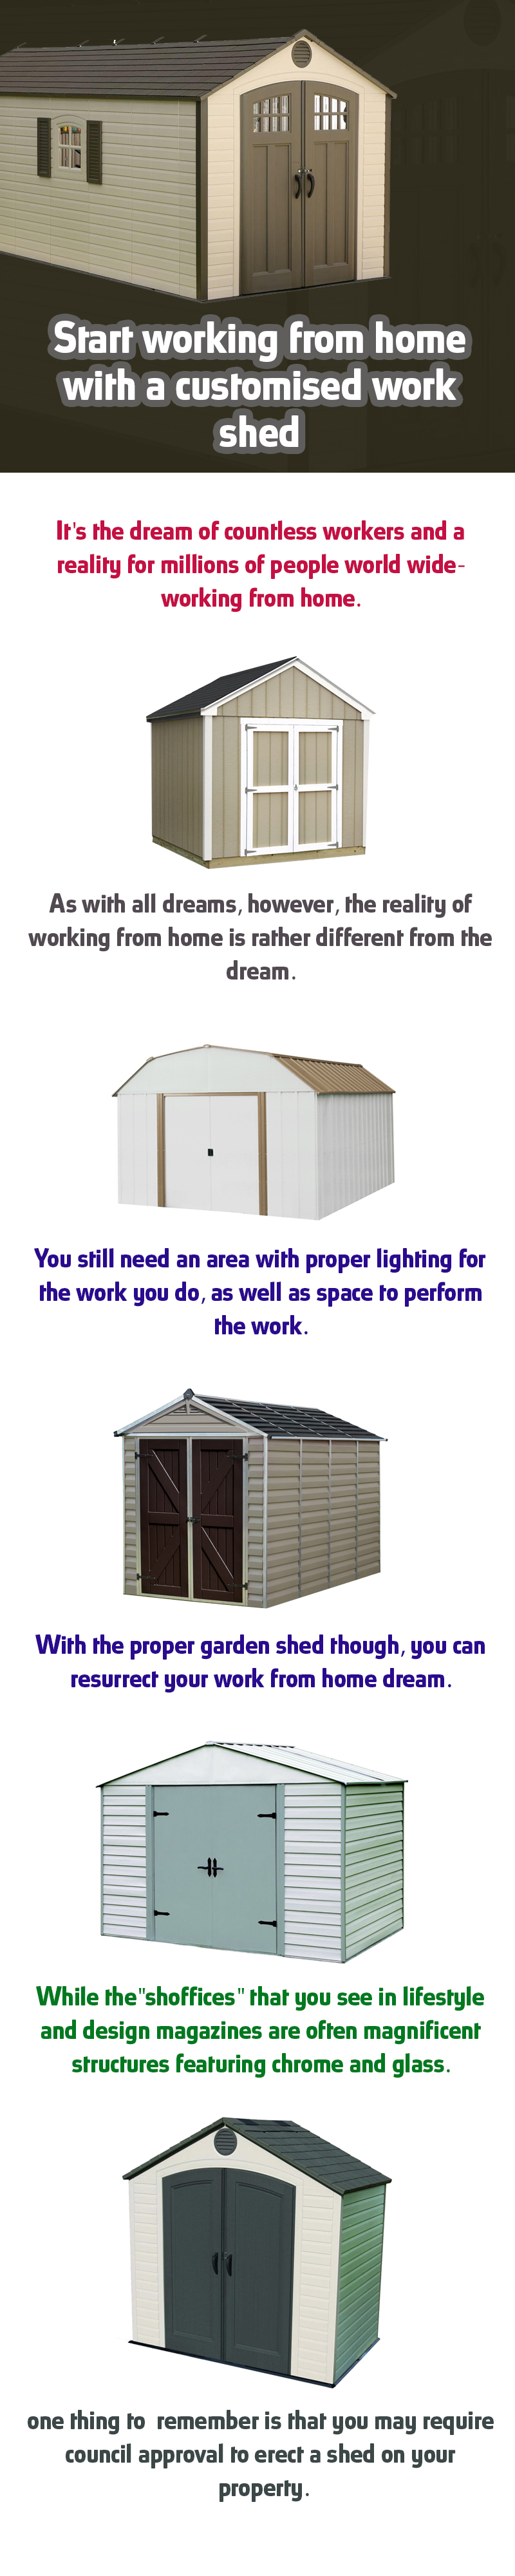 Start Working From Home With a Customised Work Shed